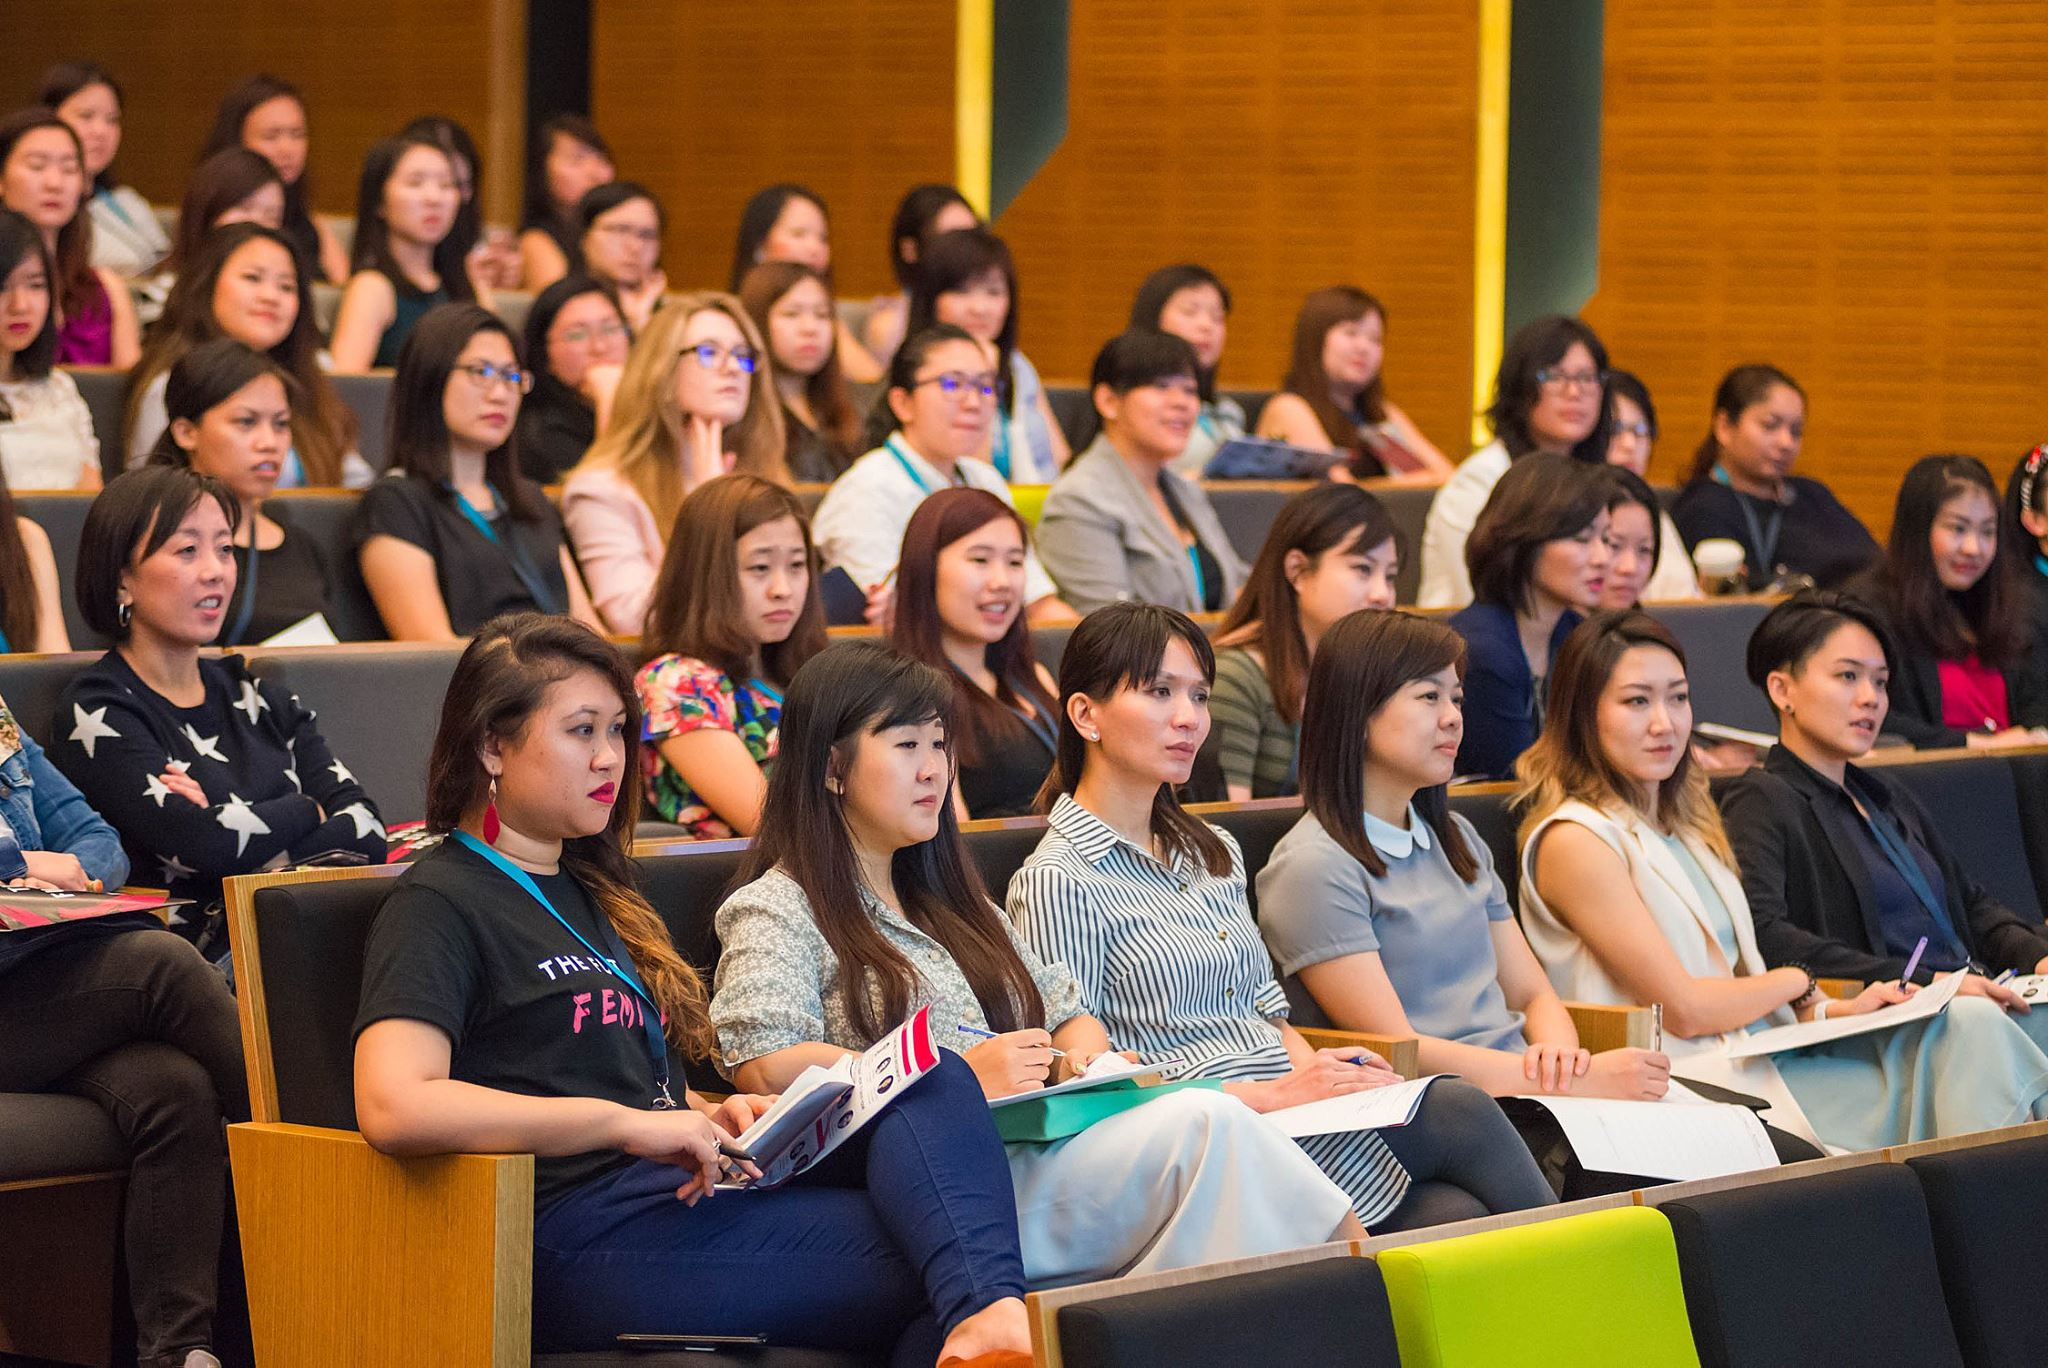 Female Networking Events in Asia